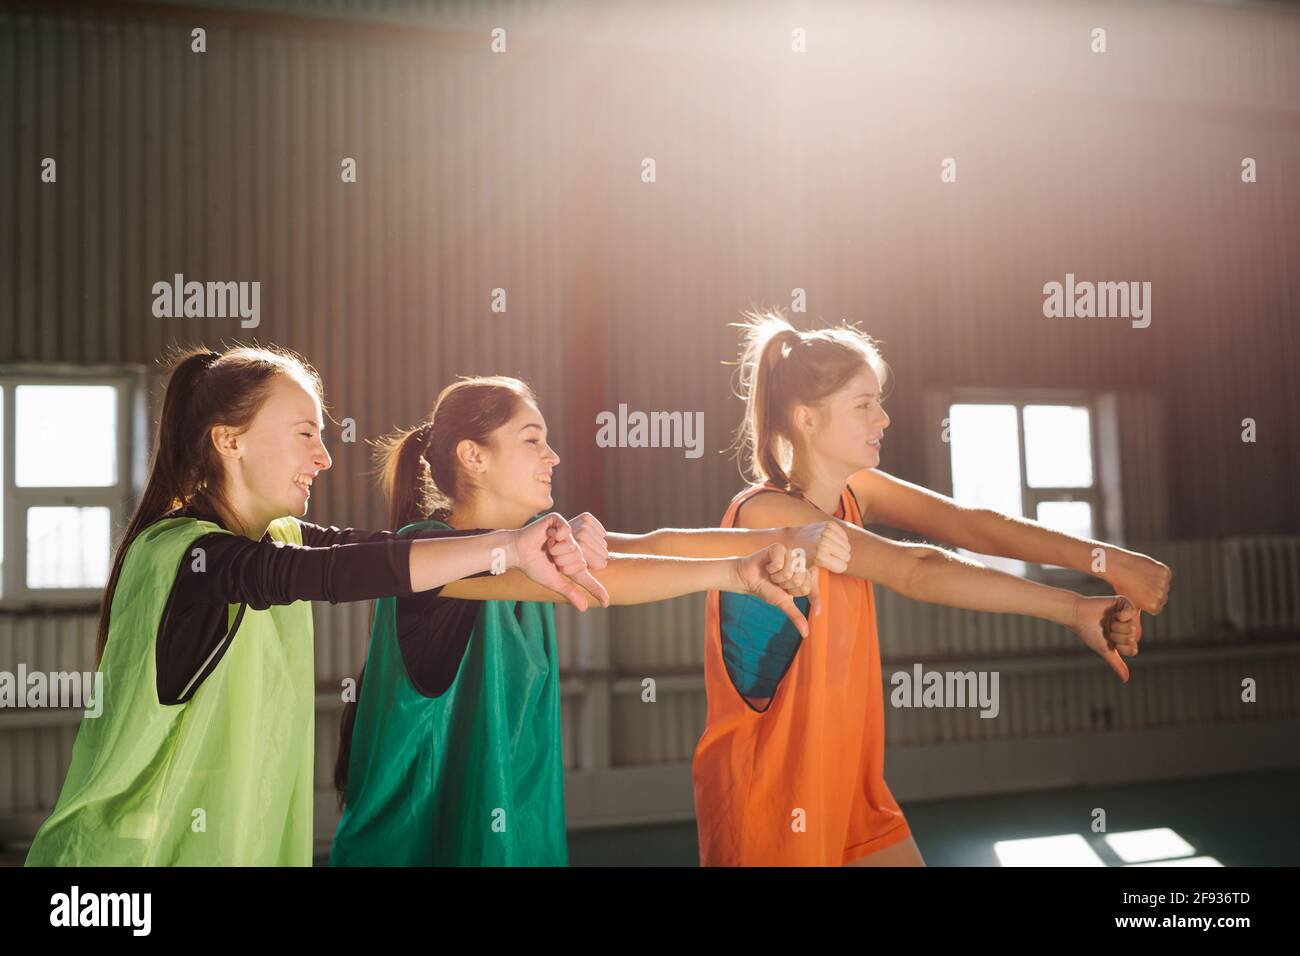 People, sporty friendship women, football fans, indoor gym, cheer up support favorite team with soccer ball showing thumbs down, sunny daylight. Stock Photo